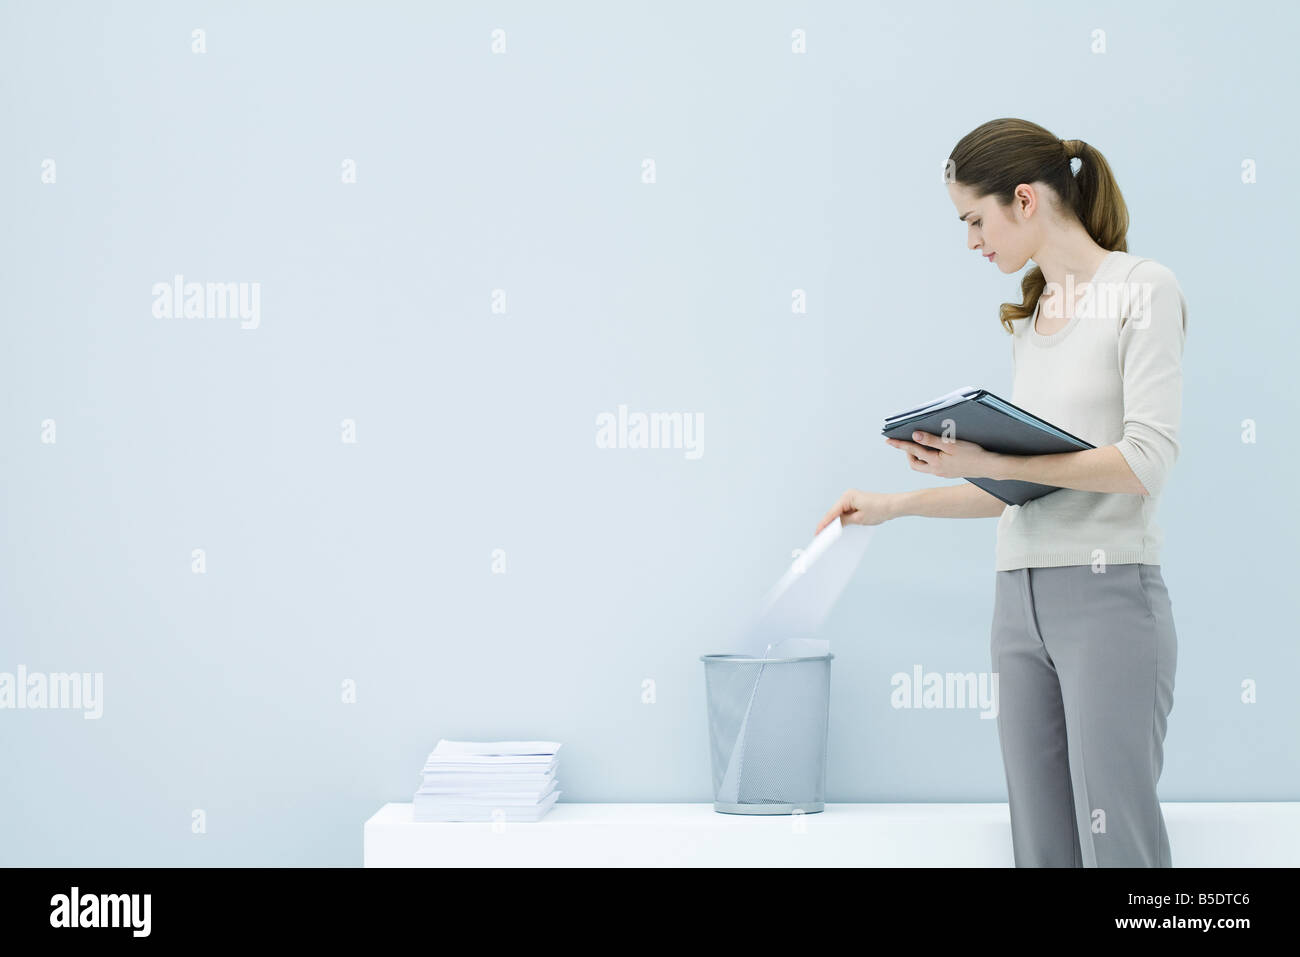 Professional woman throwing away document, holding folder - Stock Image